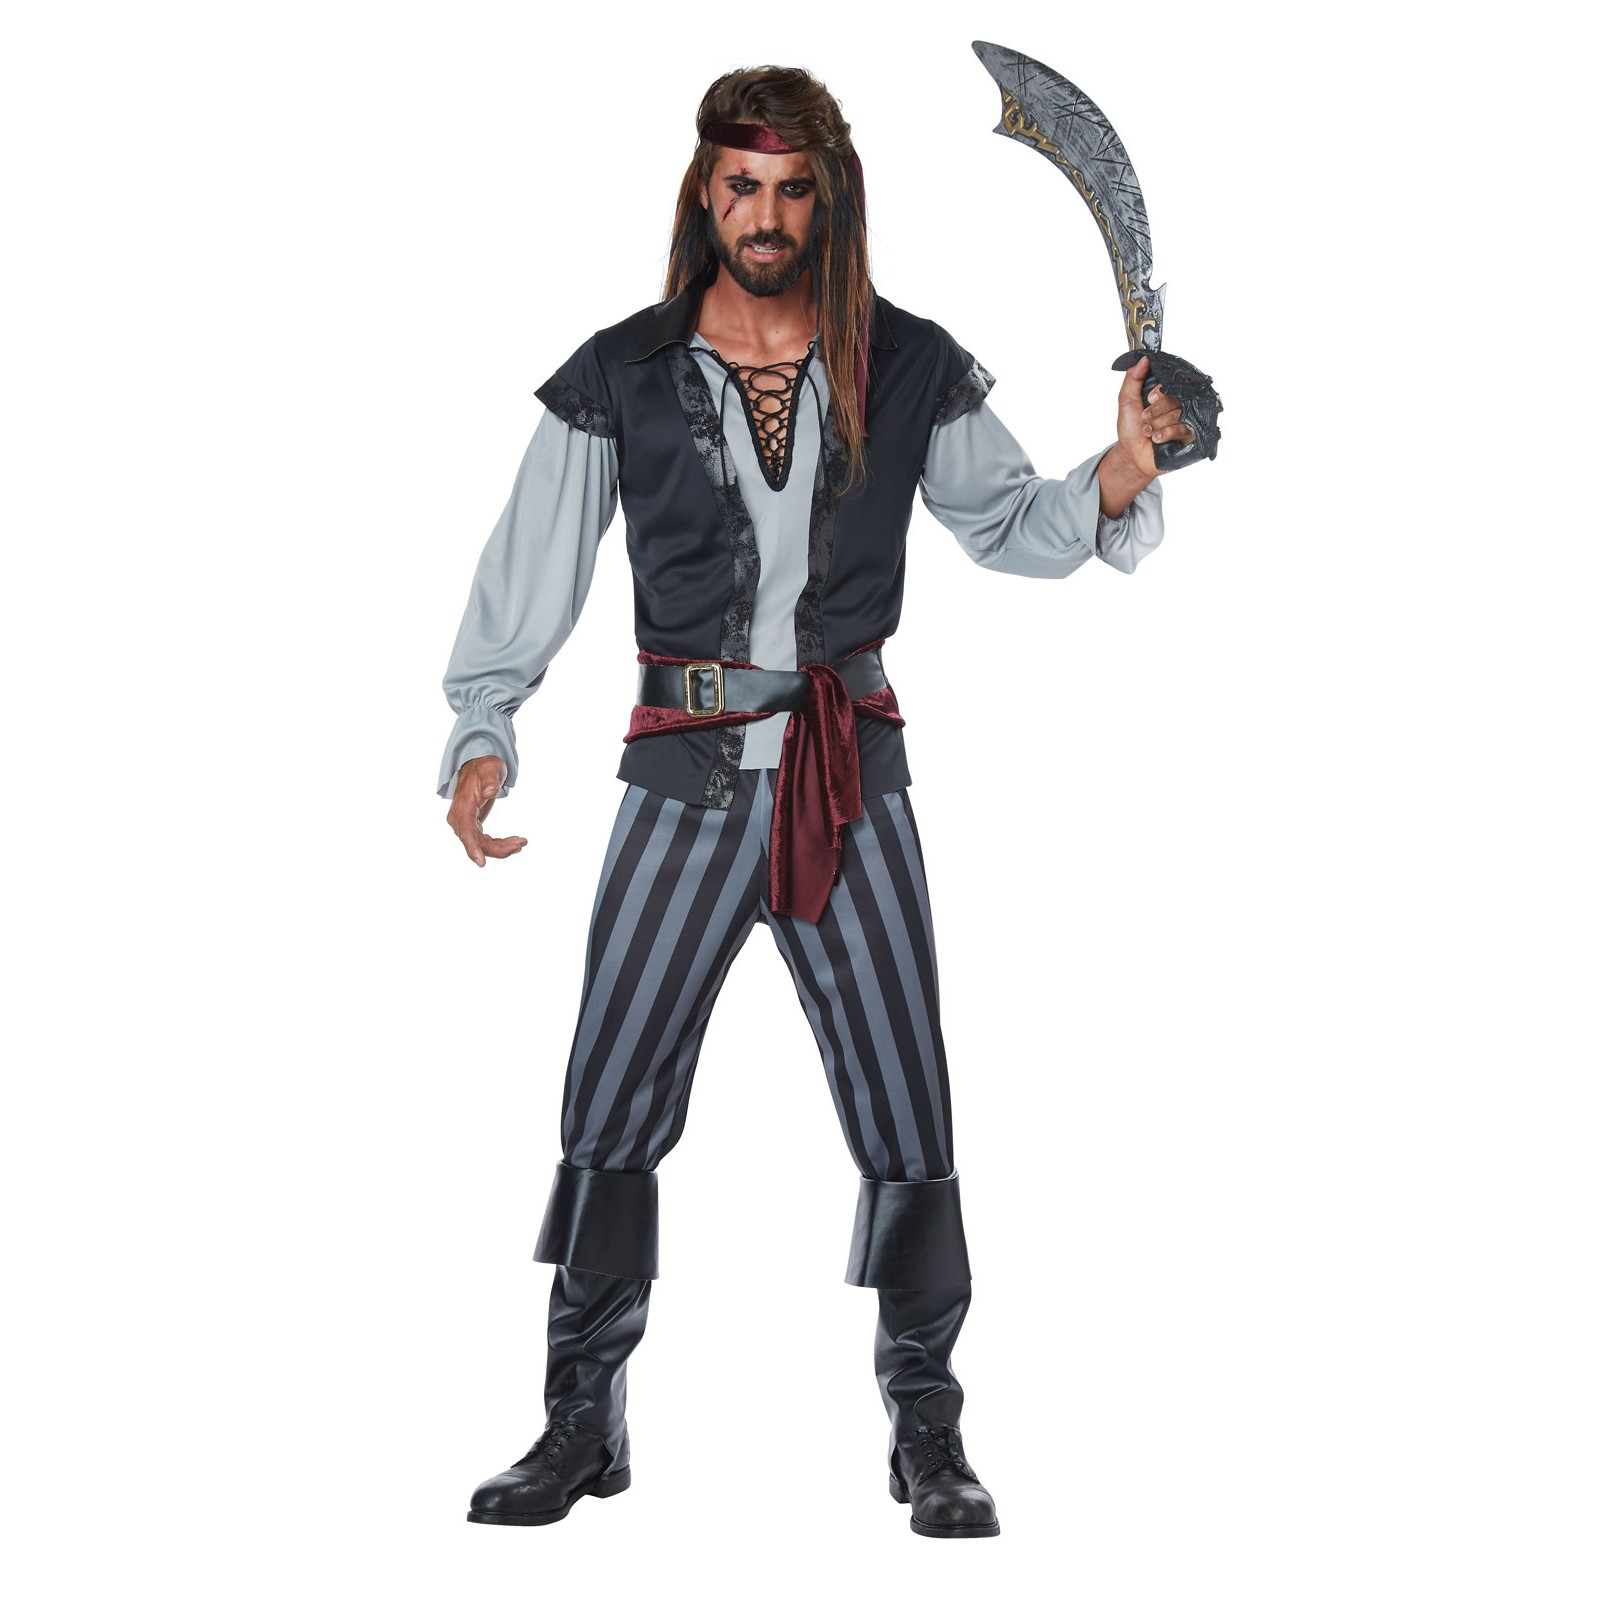 Scallywag Pirate Men's Adult Costume